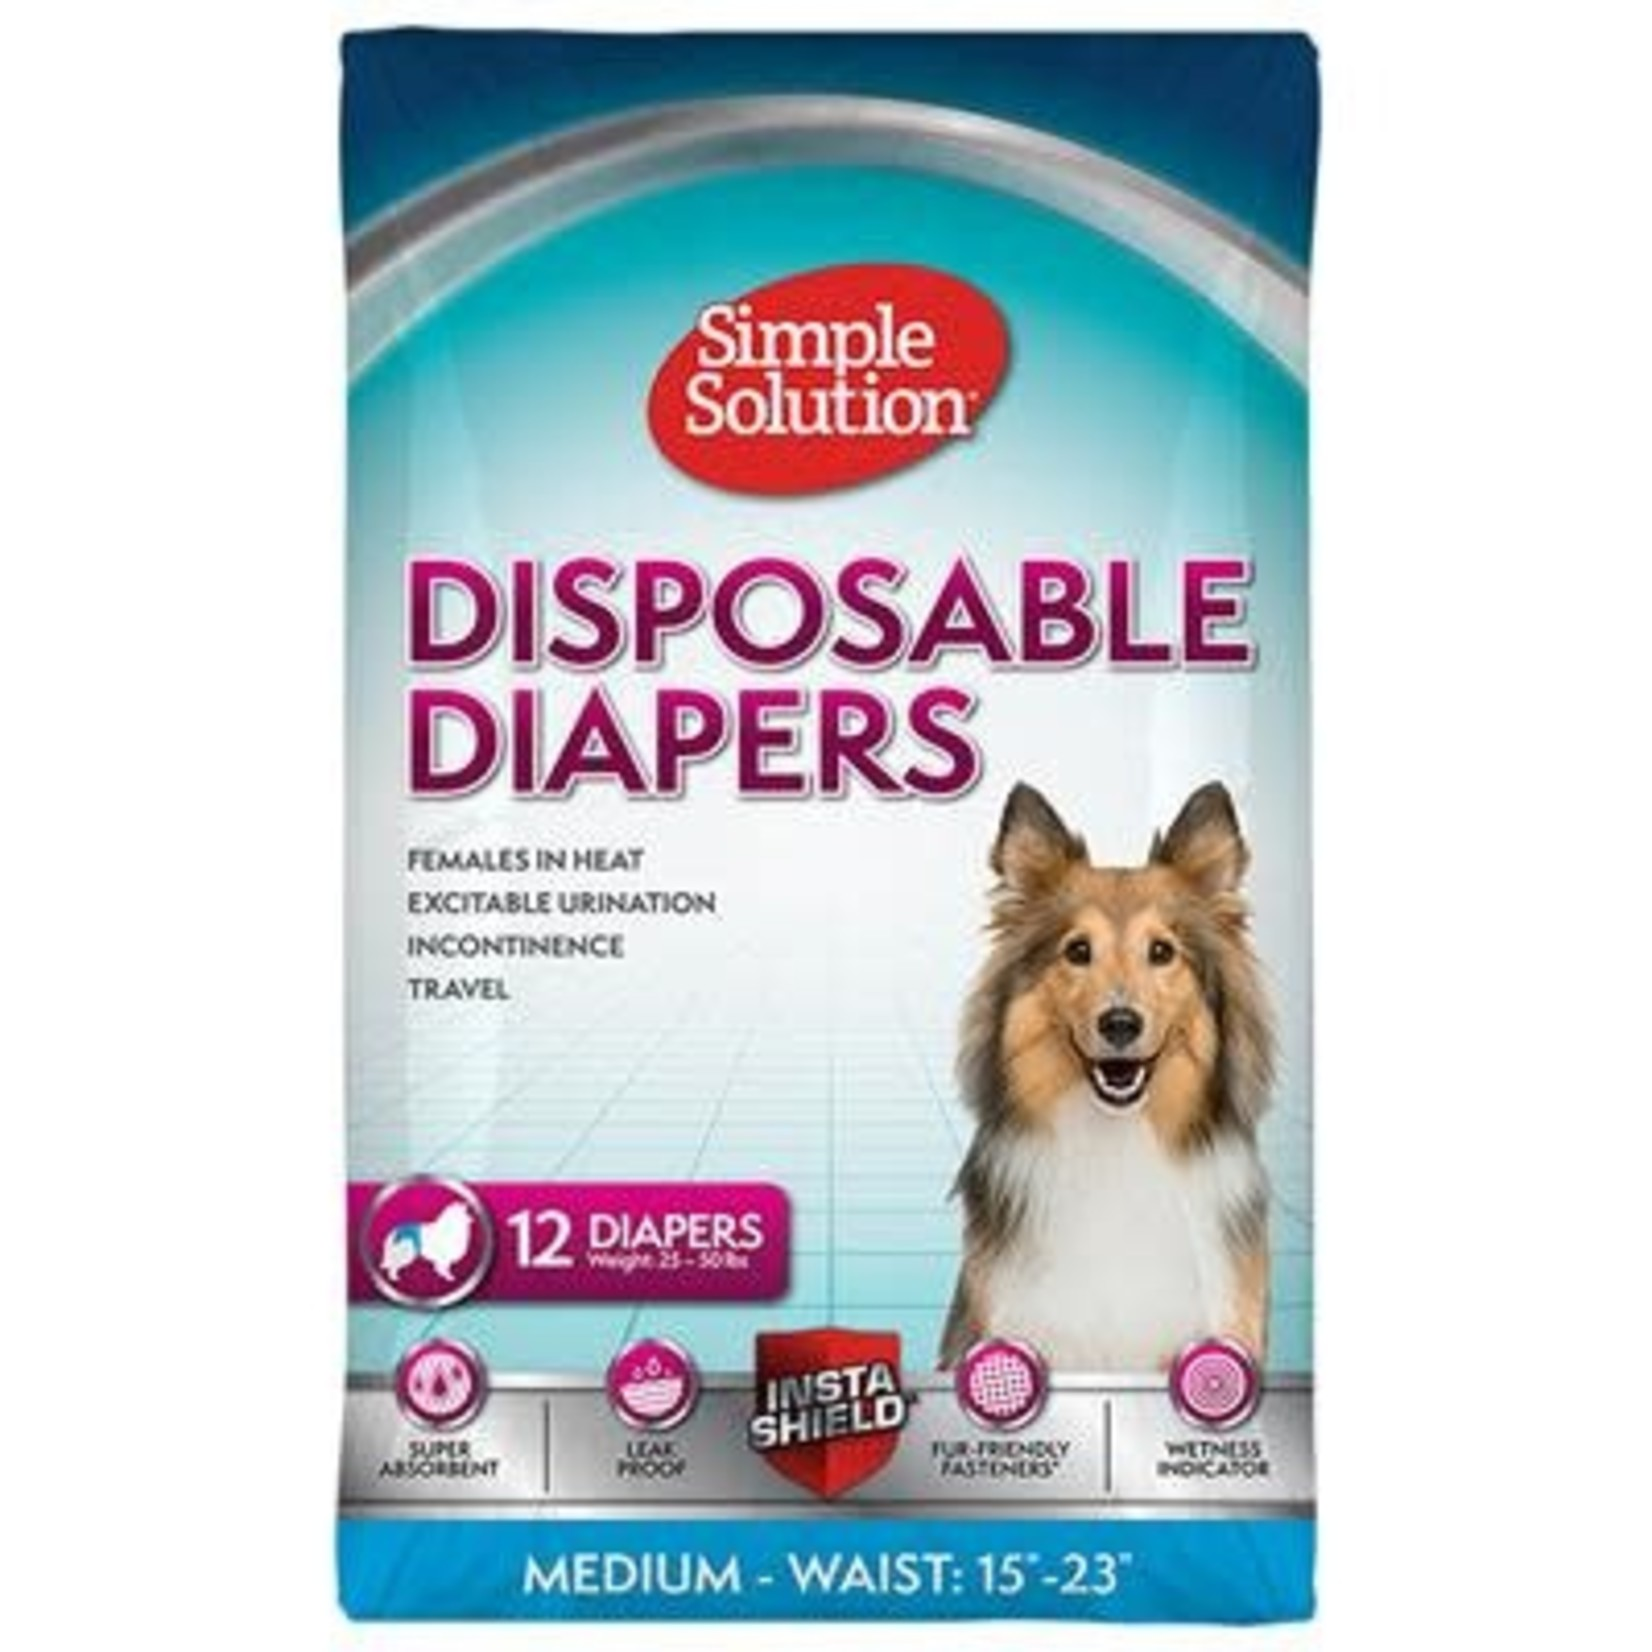 Disposable Female Diapers 12pk